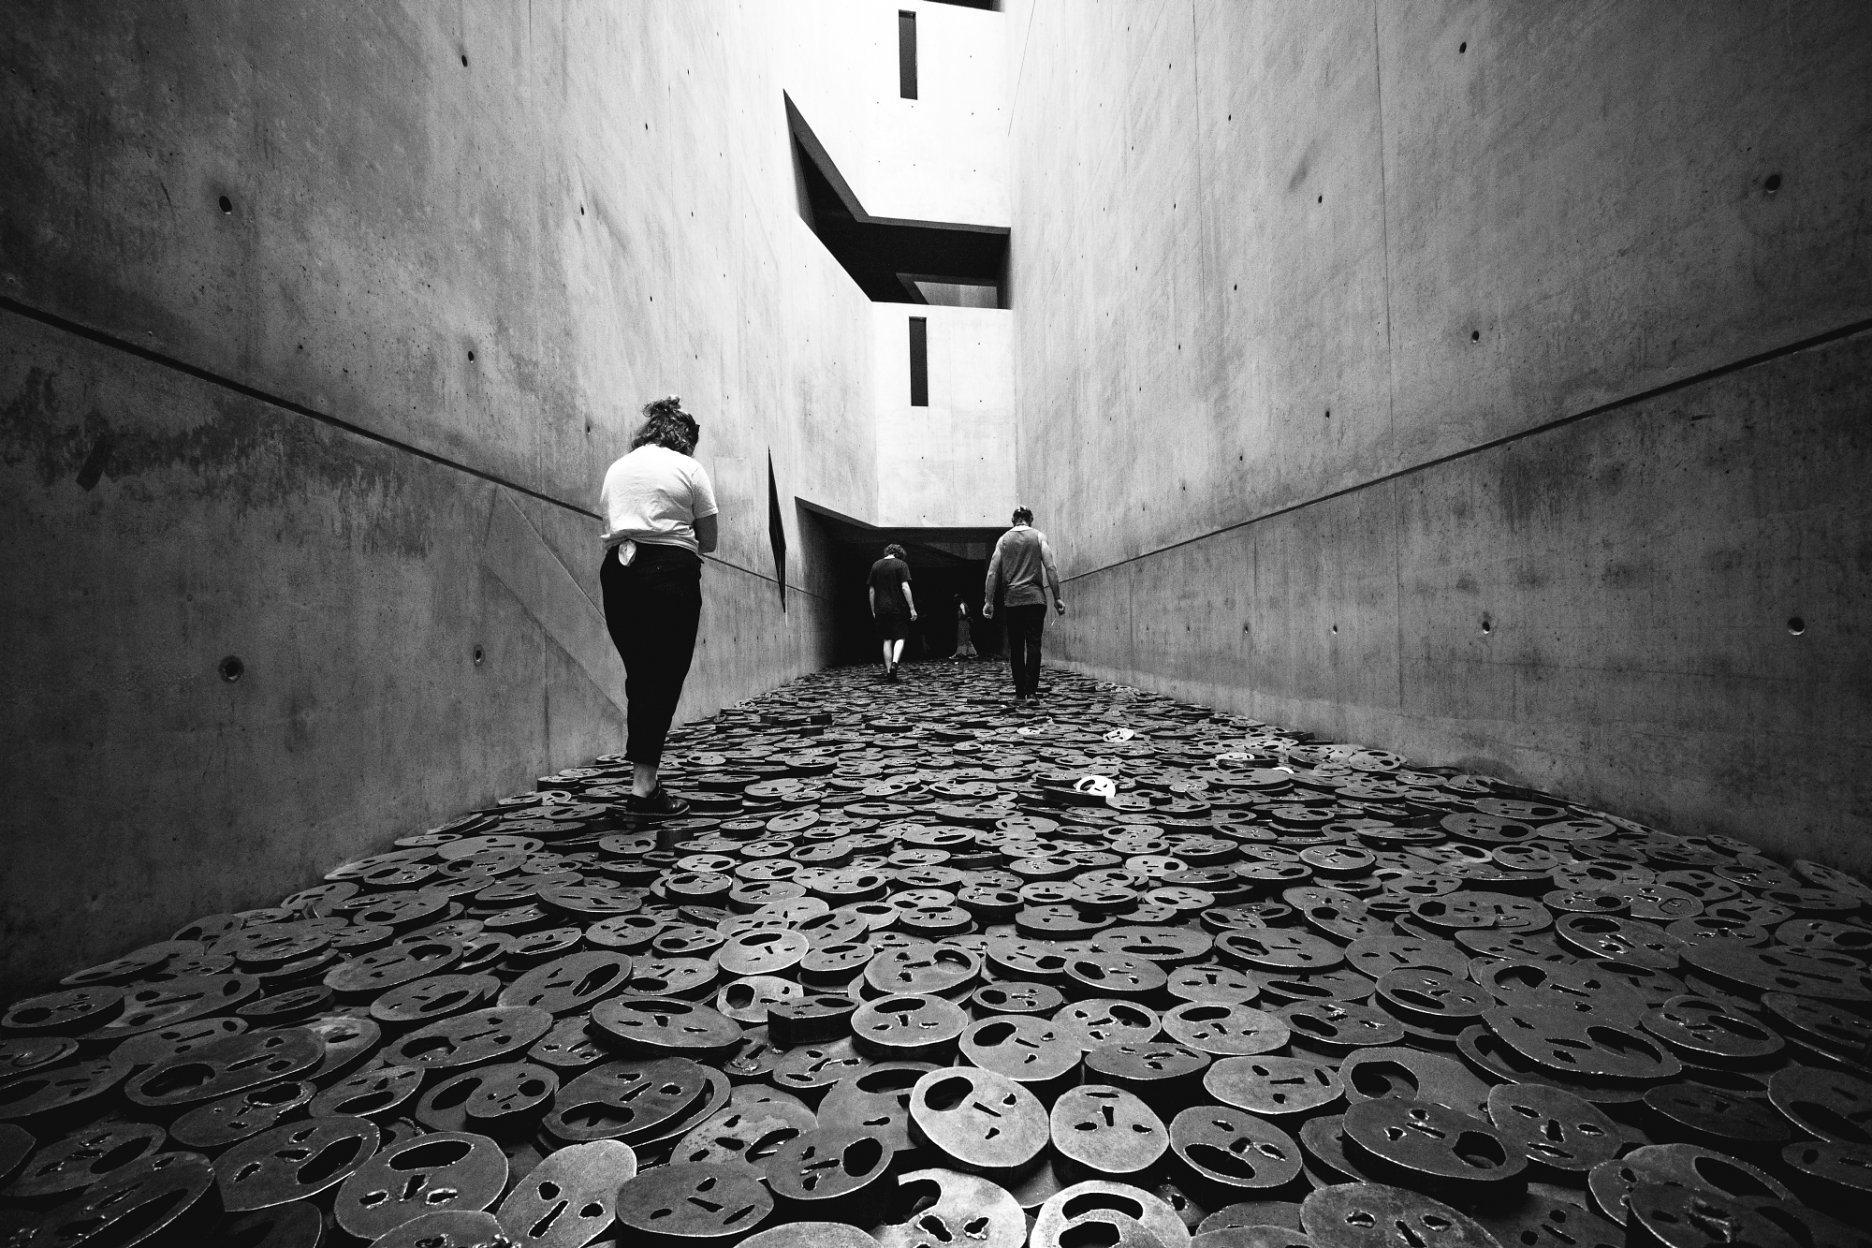 Toward the Darkness, Jewish Museum, Berlin, Germany 2017